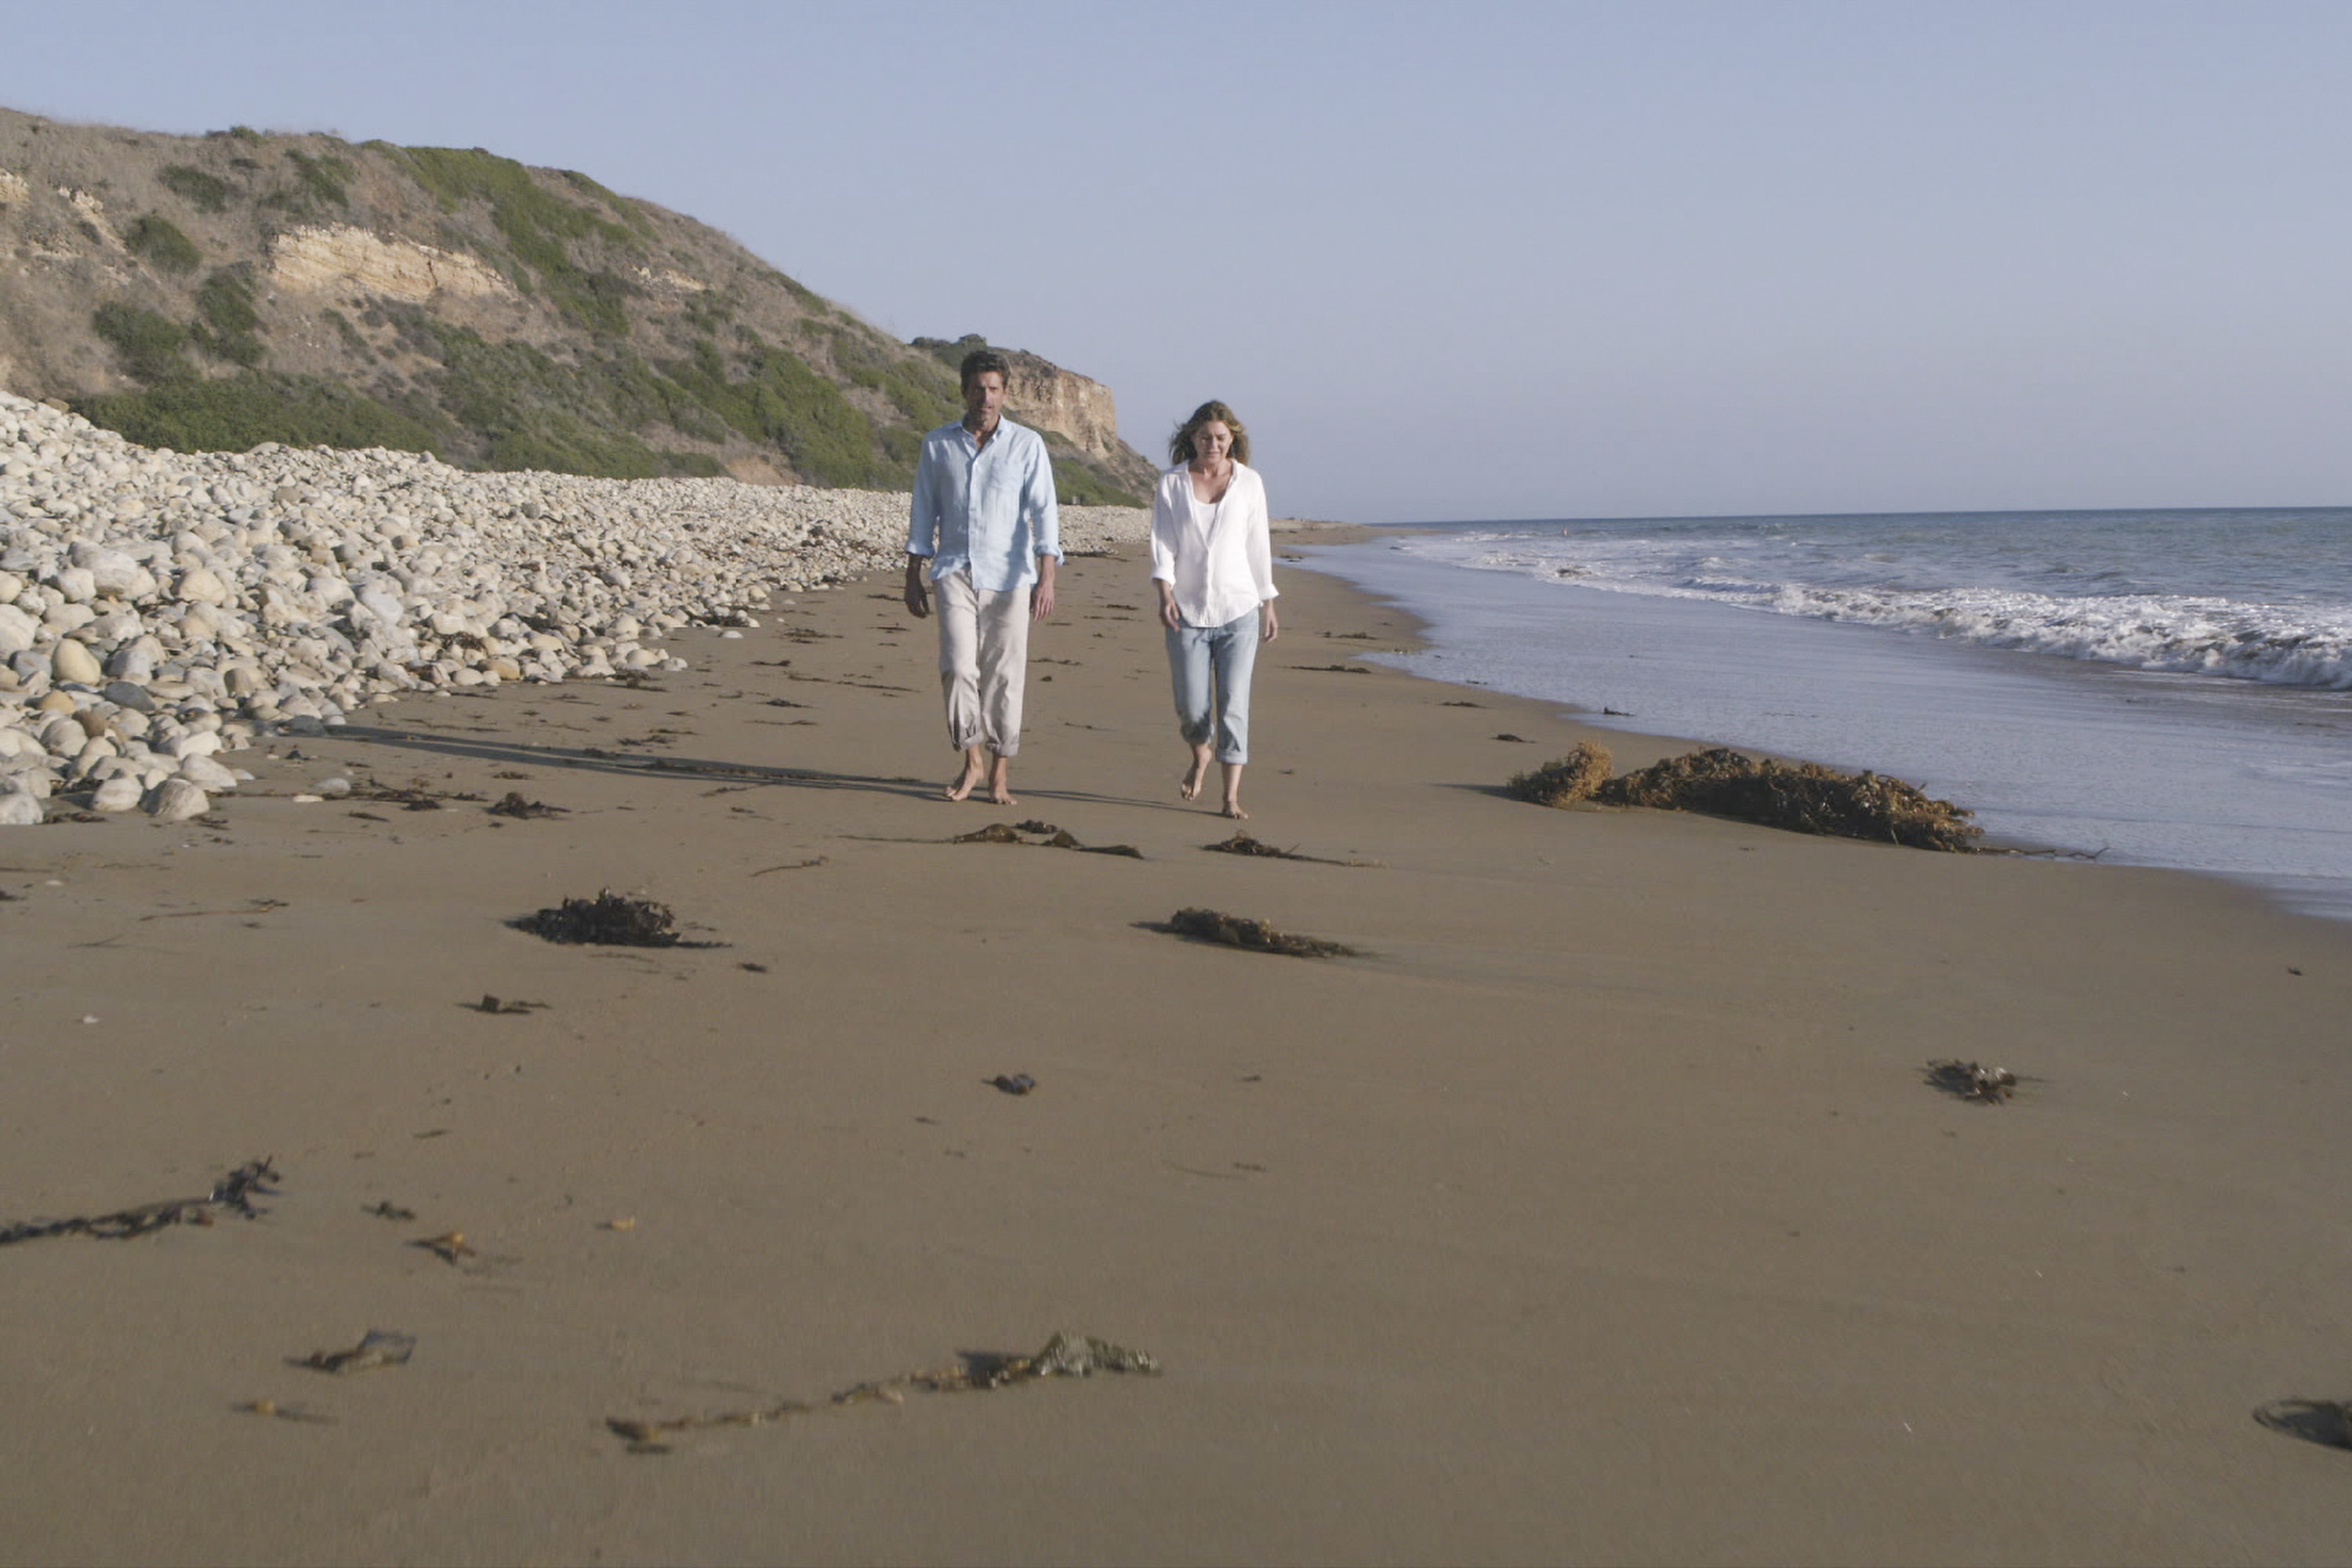 Dempsey and Pompeo walk on the beach in Grey's Anatomy